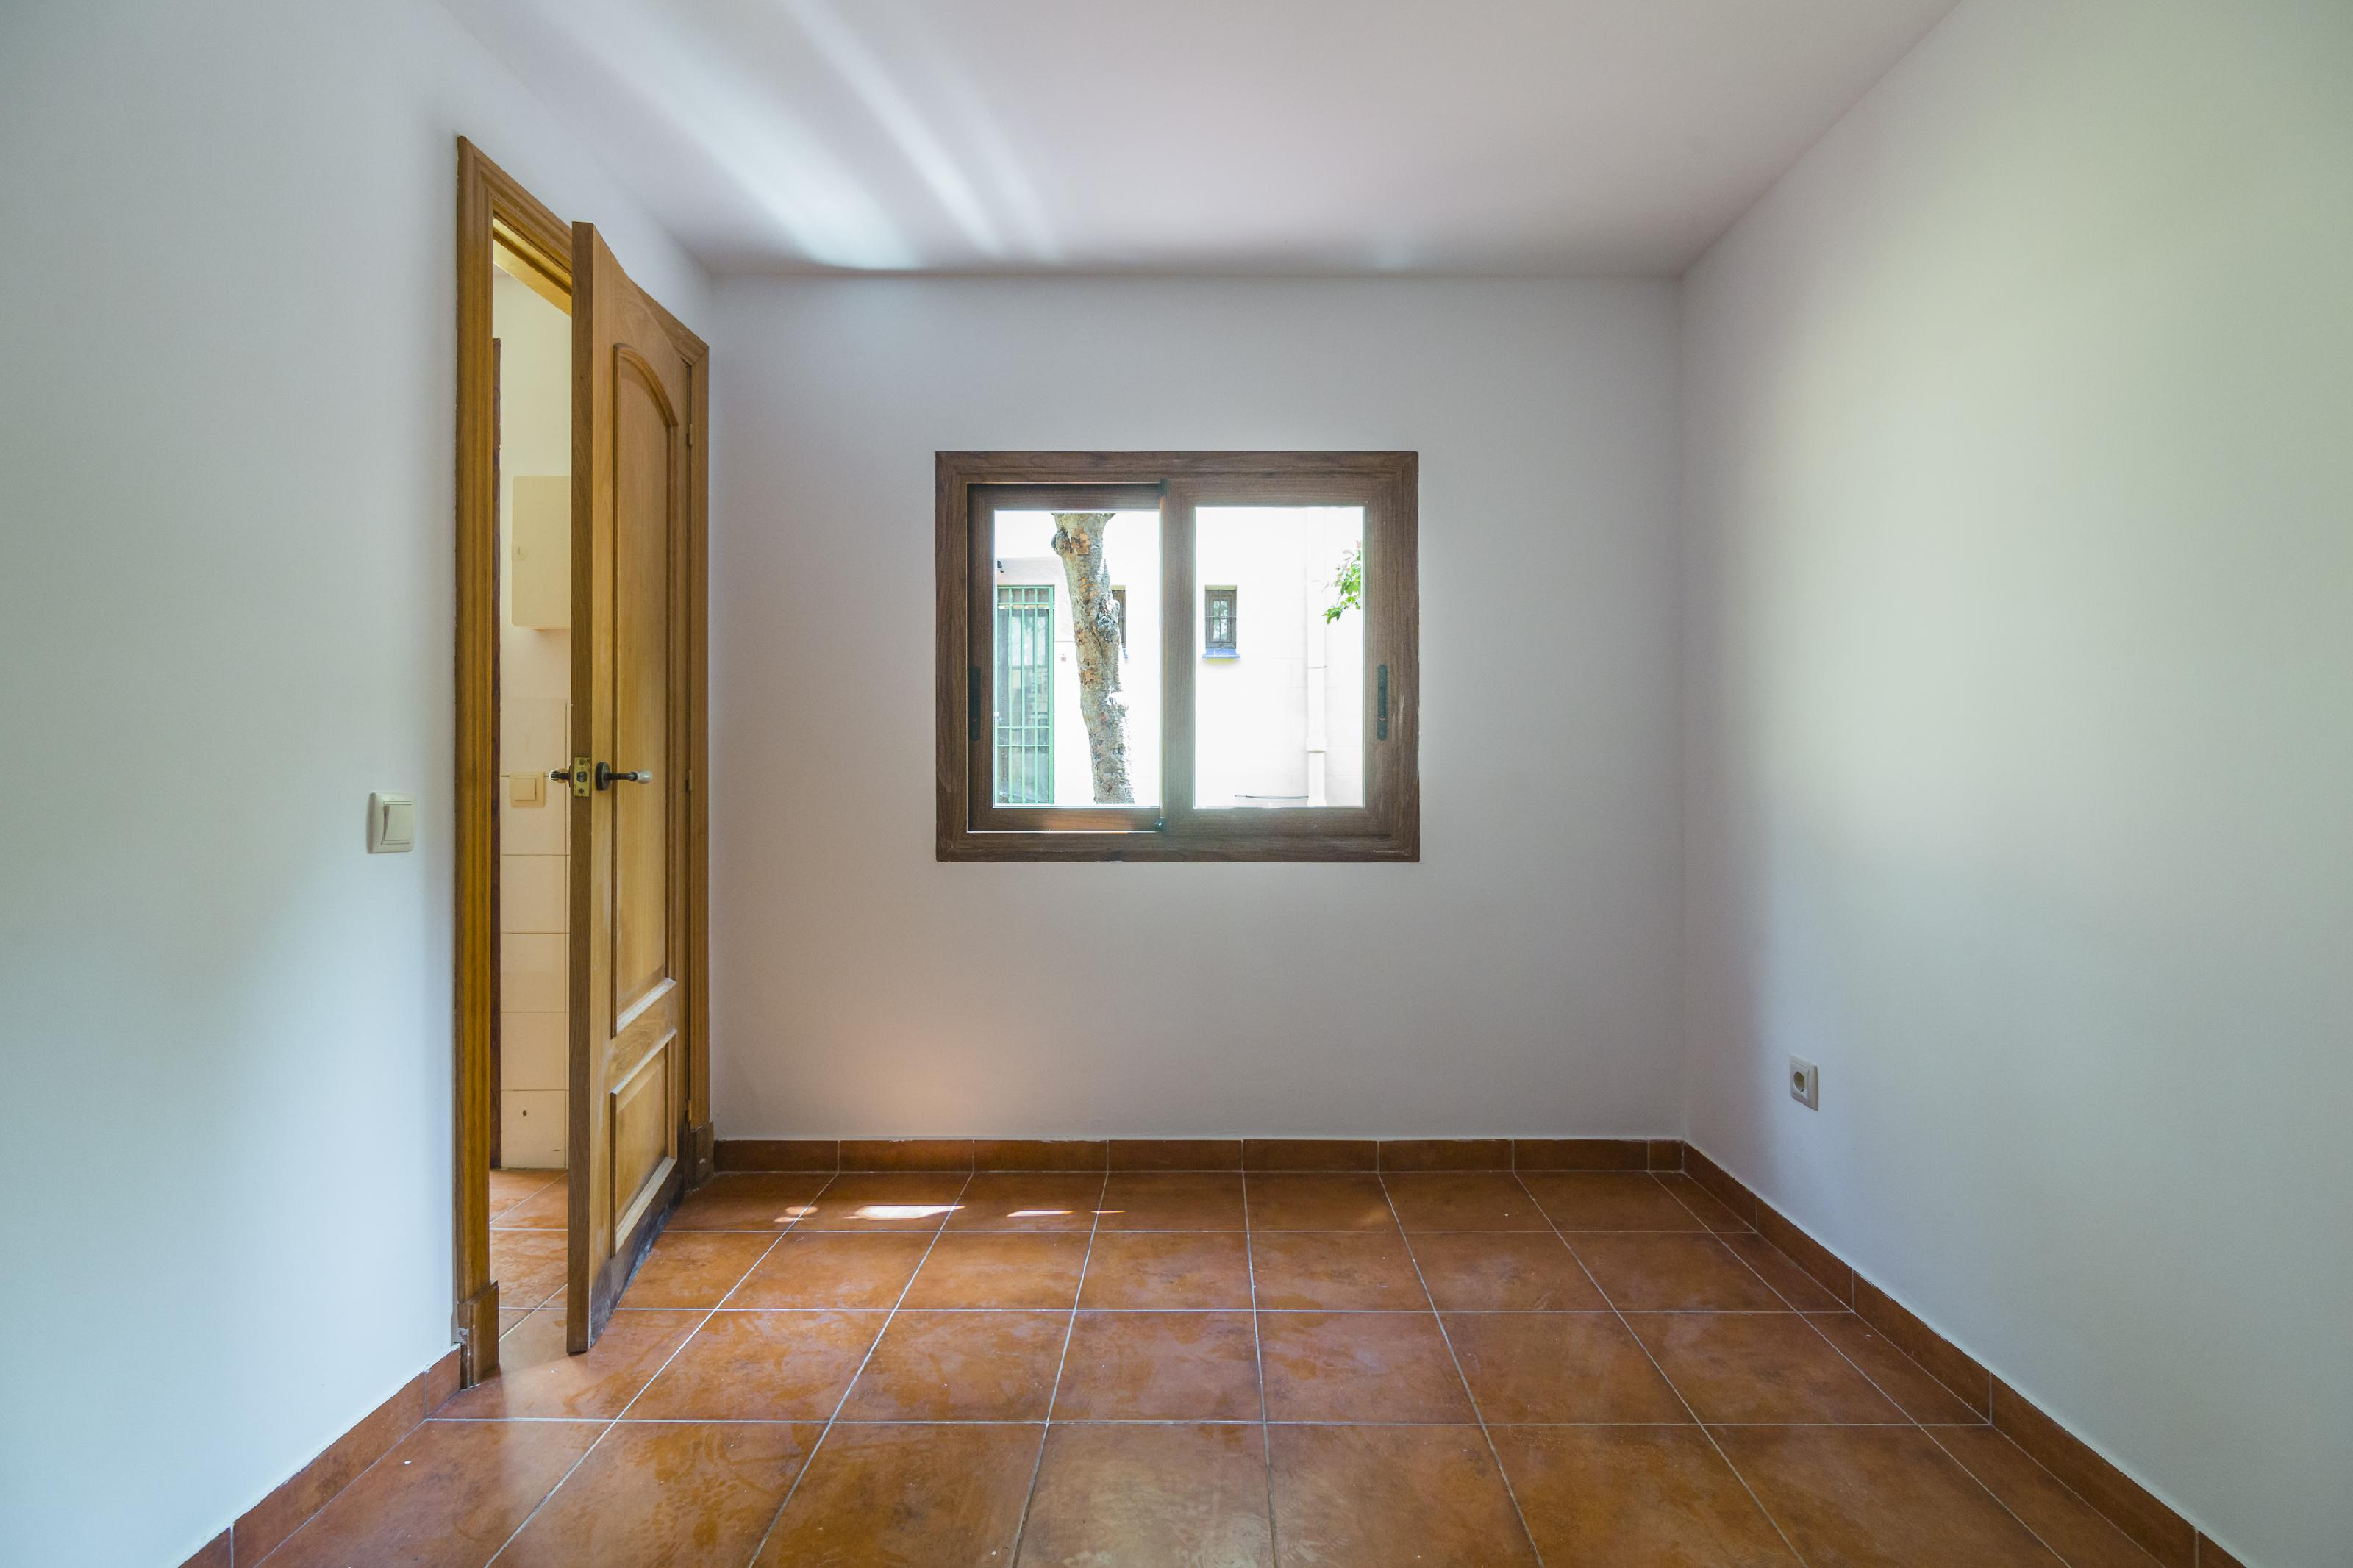 223076 House Isolated for sale in Sarrià-Sant Gervasi, Sarrià 28